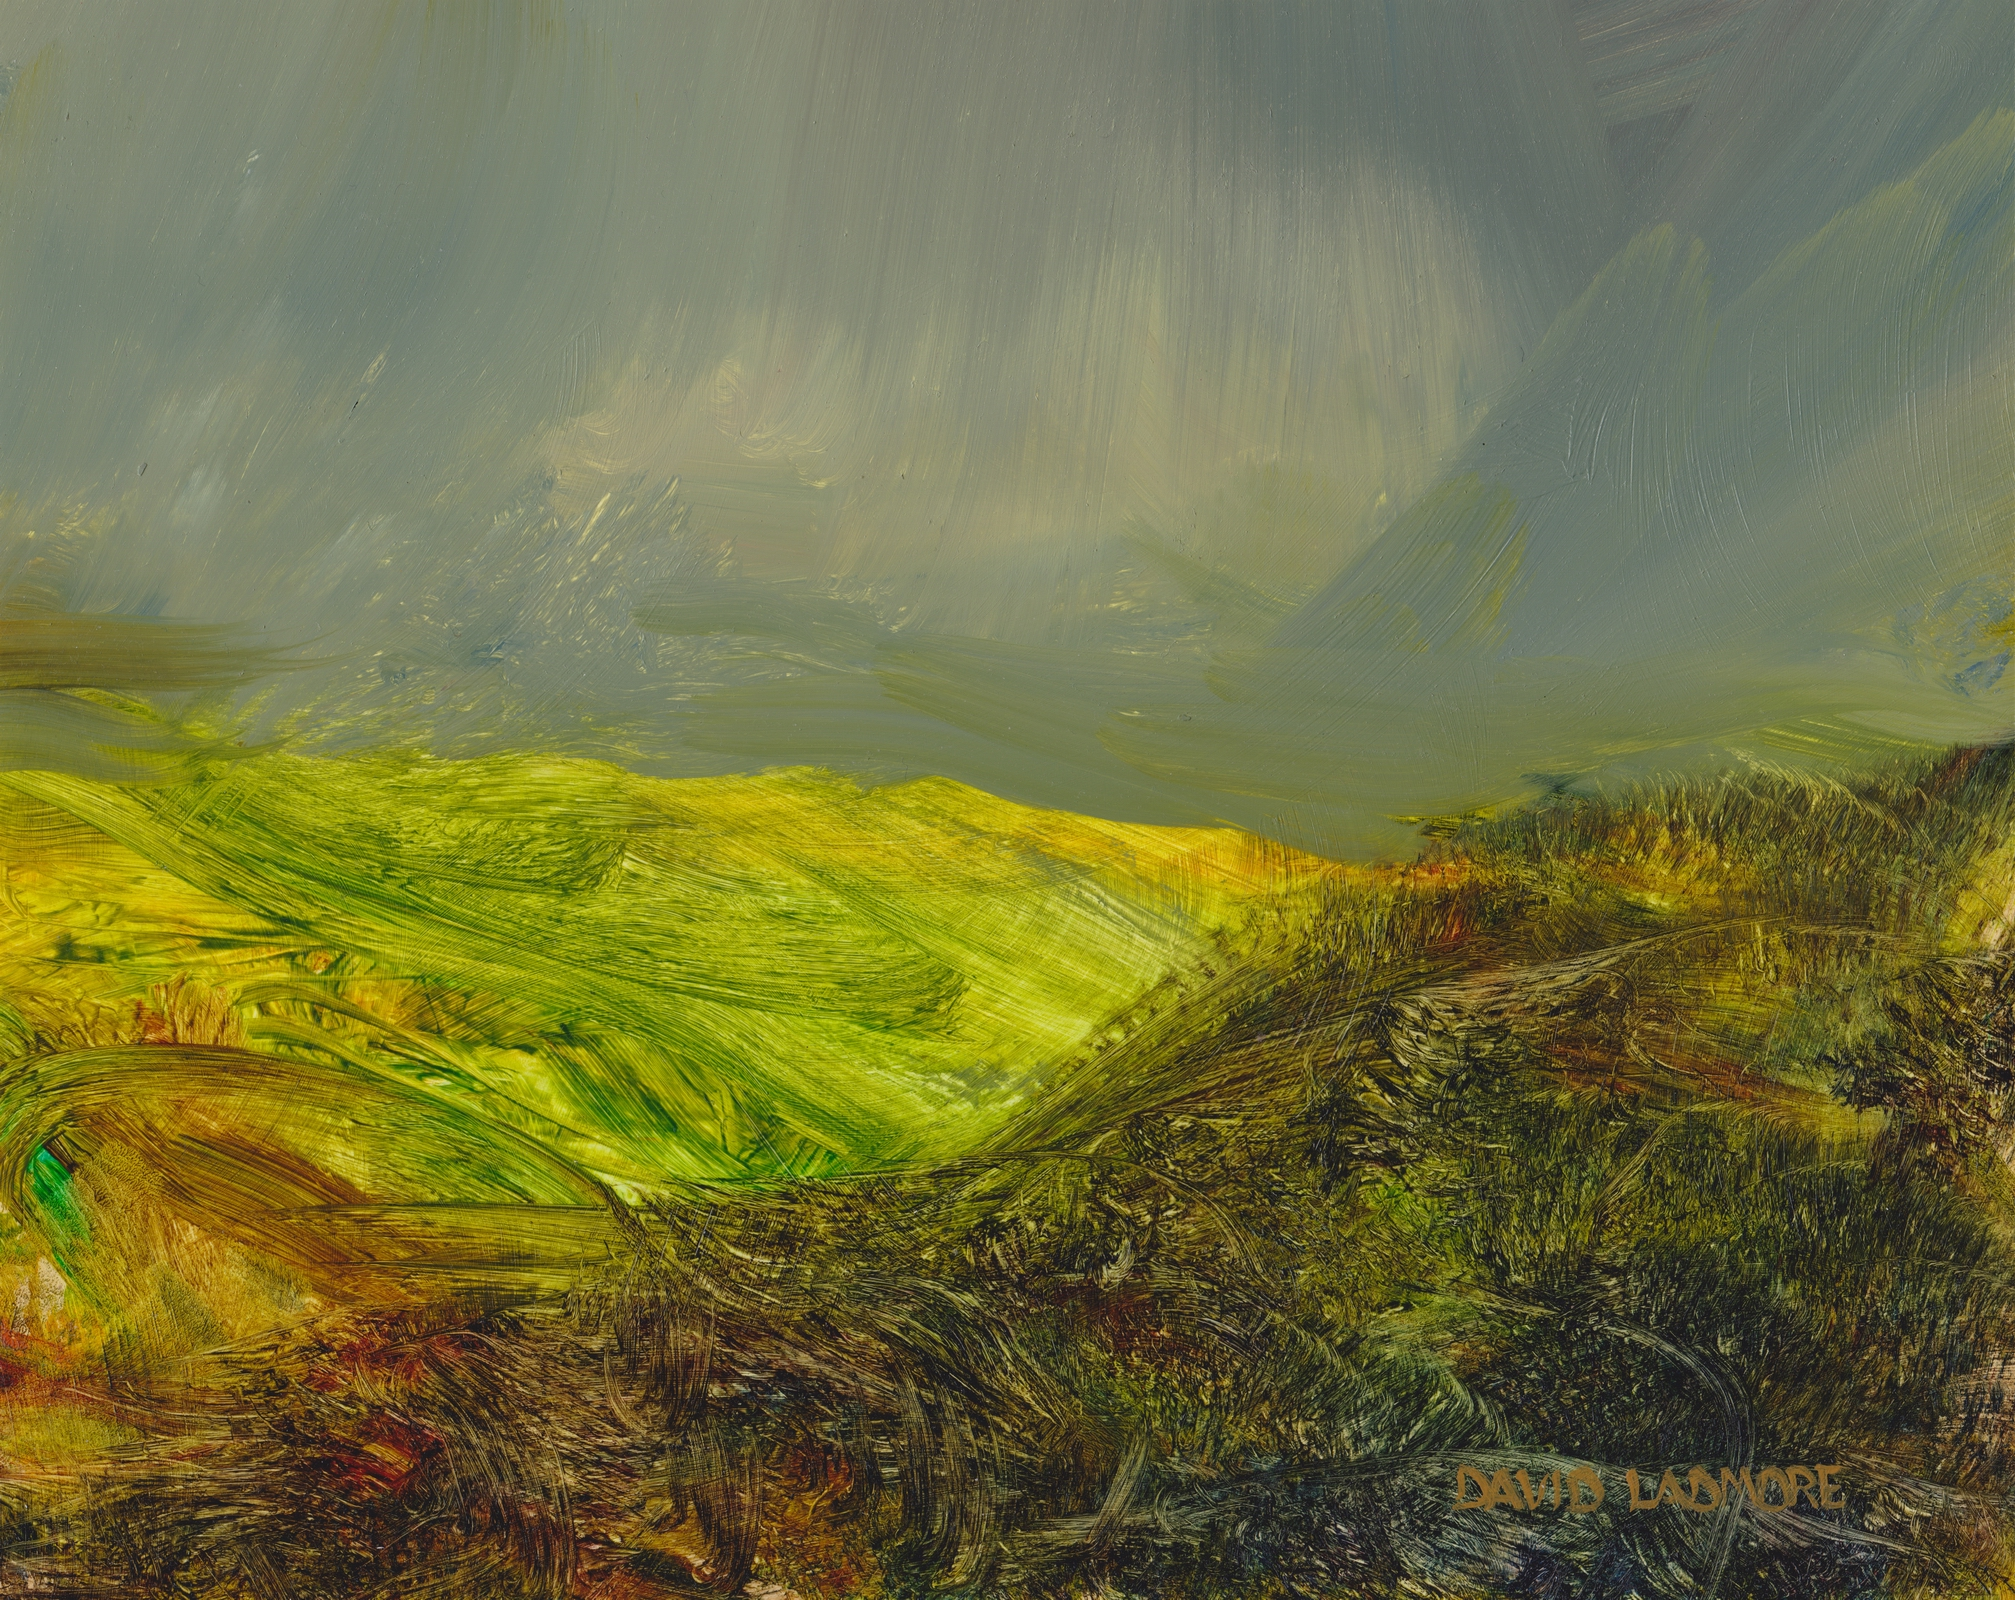 image of landscape oil painting Moorland 48 by David Ladmore